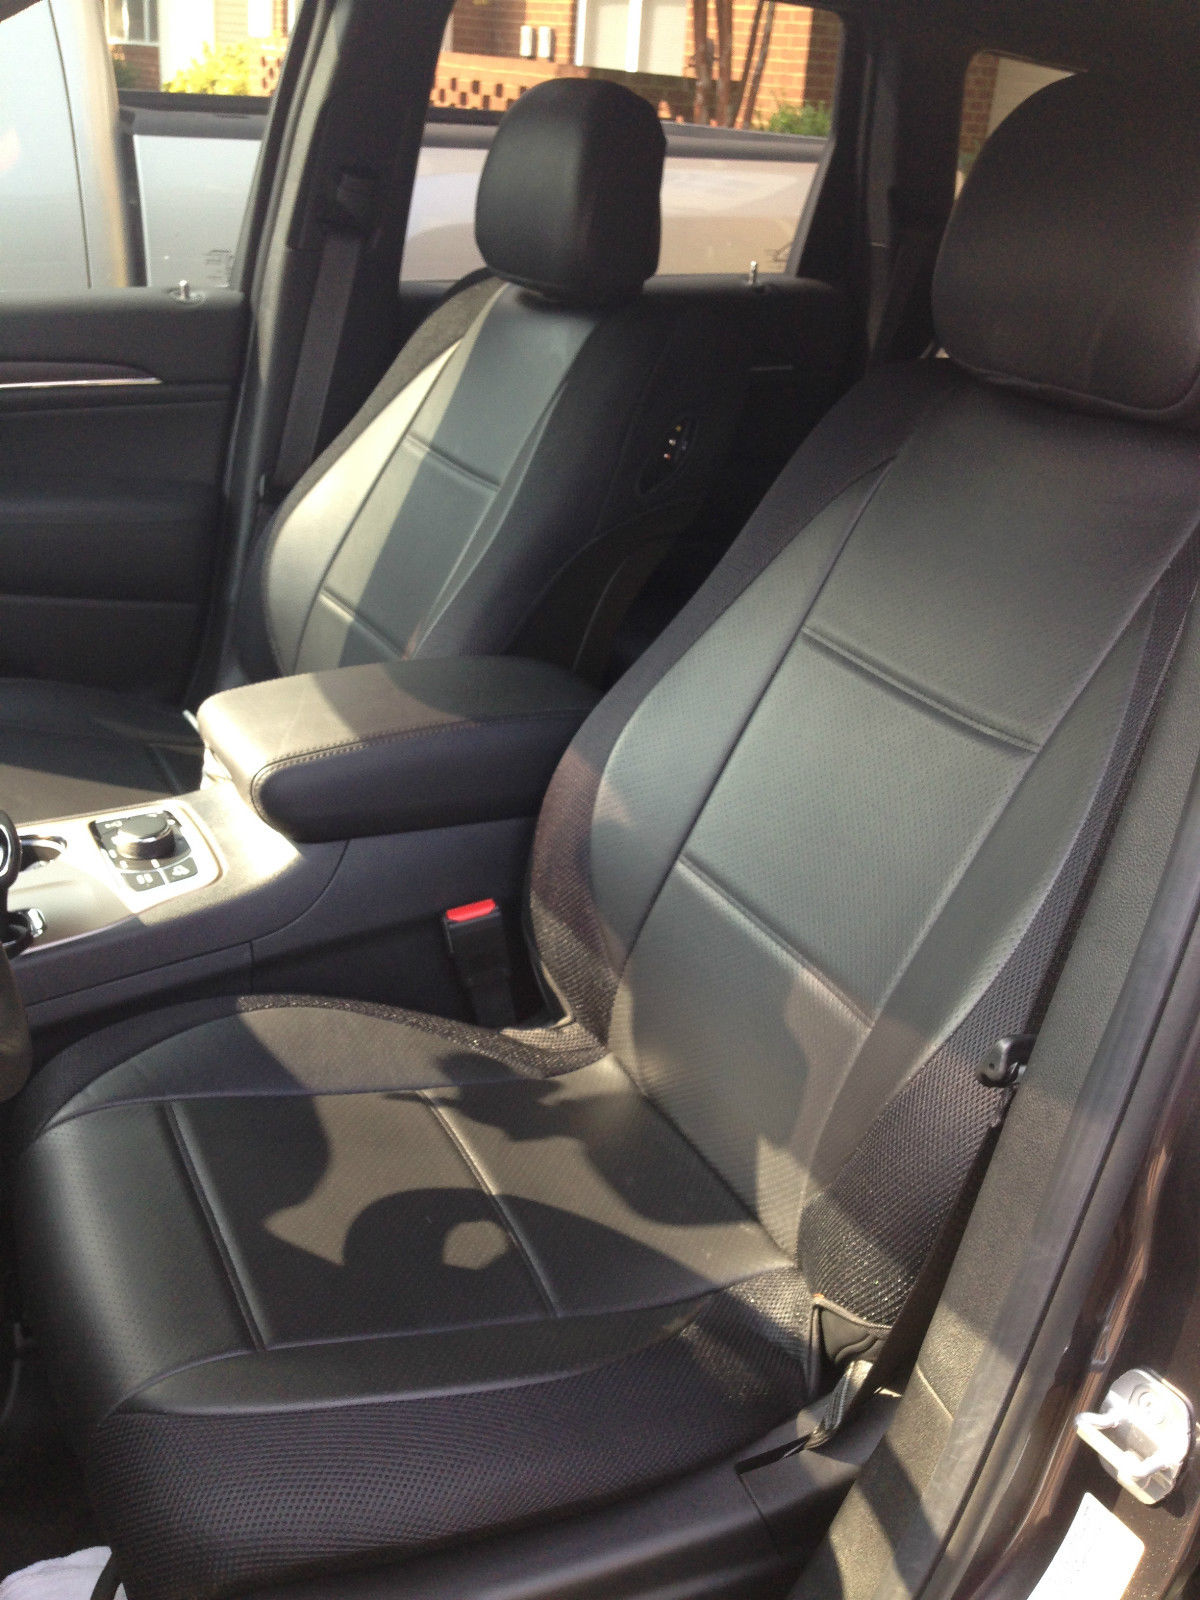 leatherette front seat covers for vw golf & vw jetta mk3 mk4 mk5 mk6